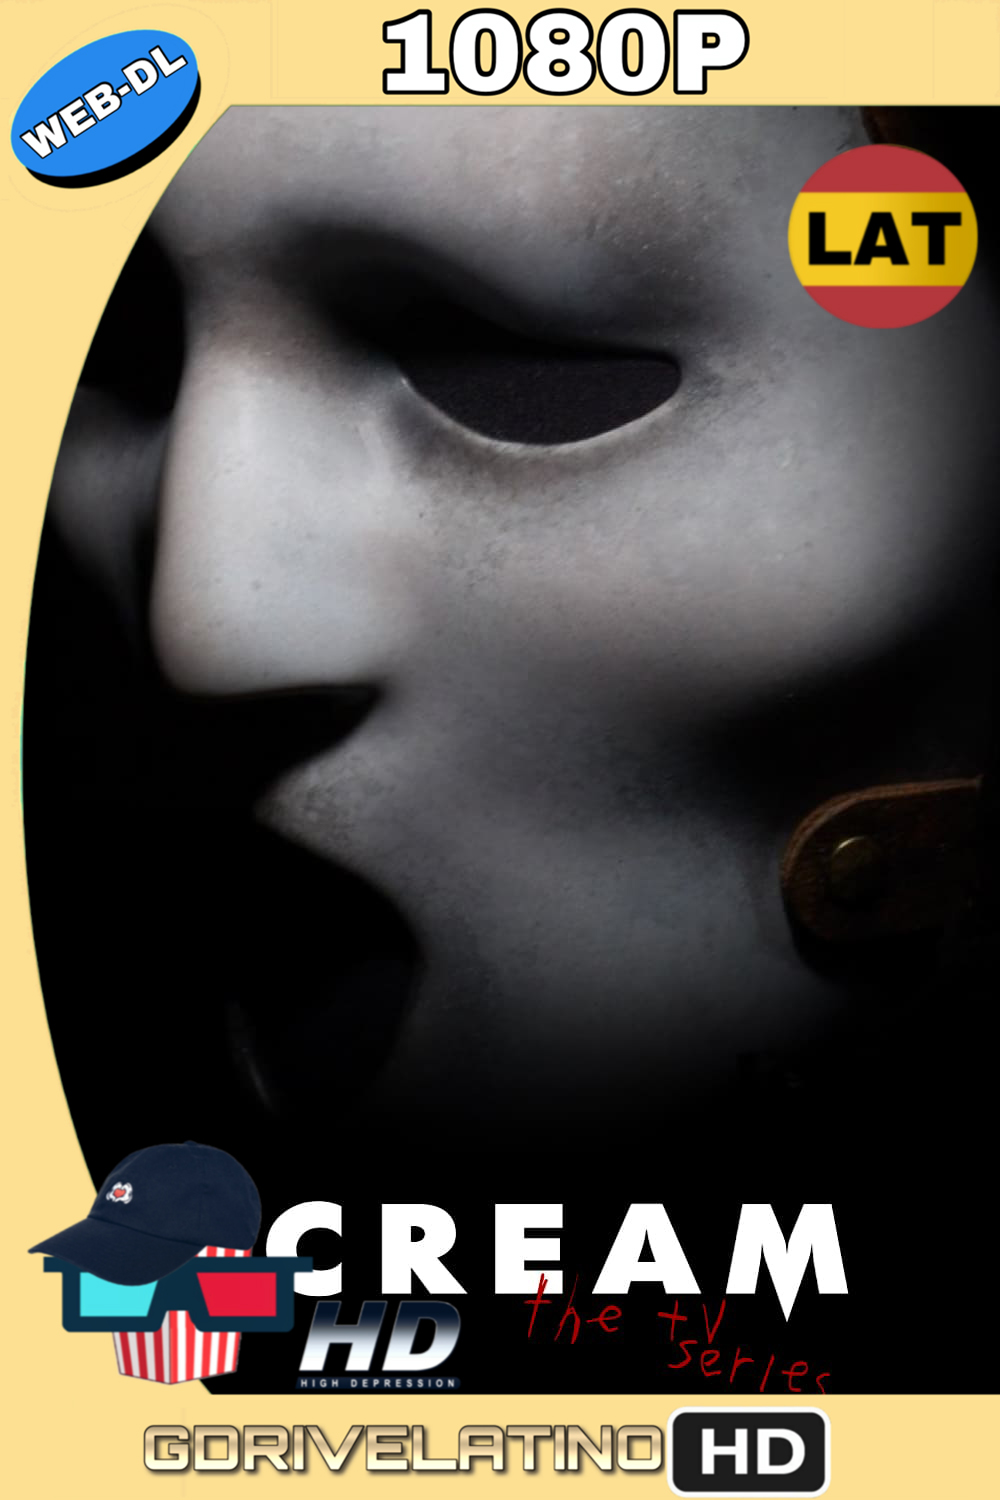 Scream (2015) Temporada 1 WEB-DL 1080p (Latino-Inglés) MKV